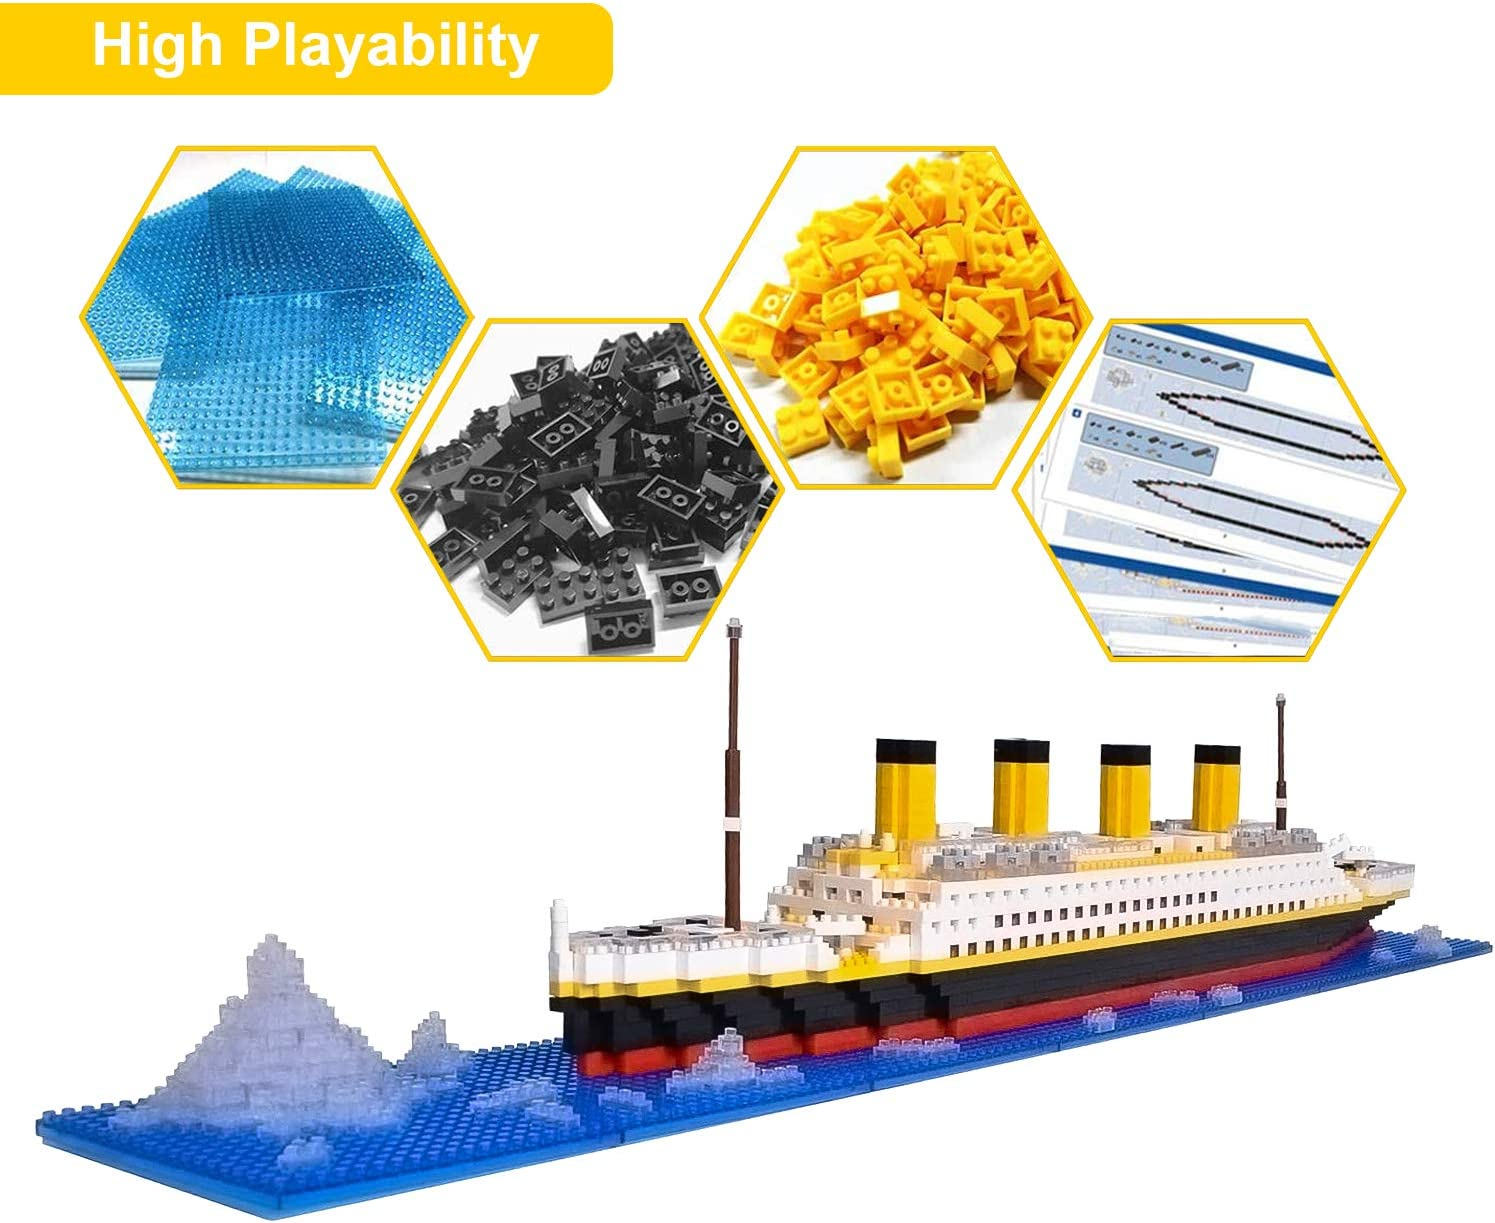 Micro Mini Blocks Titanic Model Building Set with 2 Figure Gift for Adults and Kids 1872 Piece Mini Bricks Toy